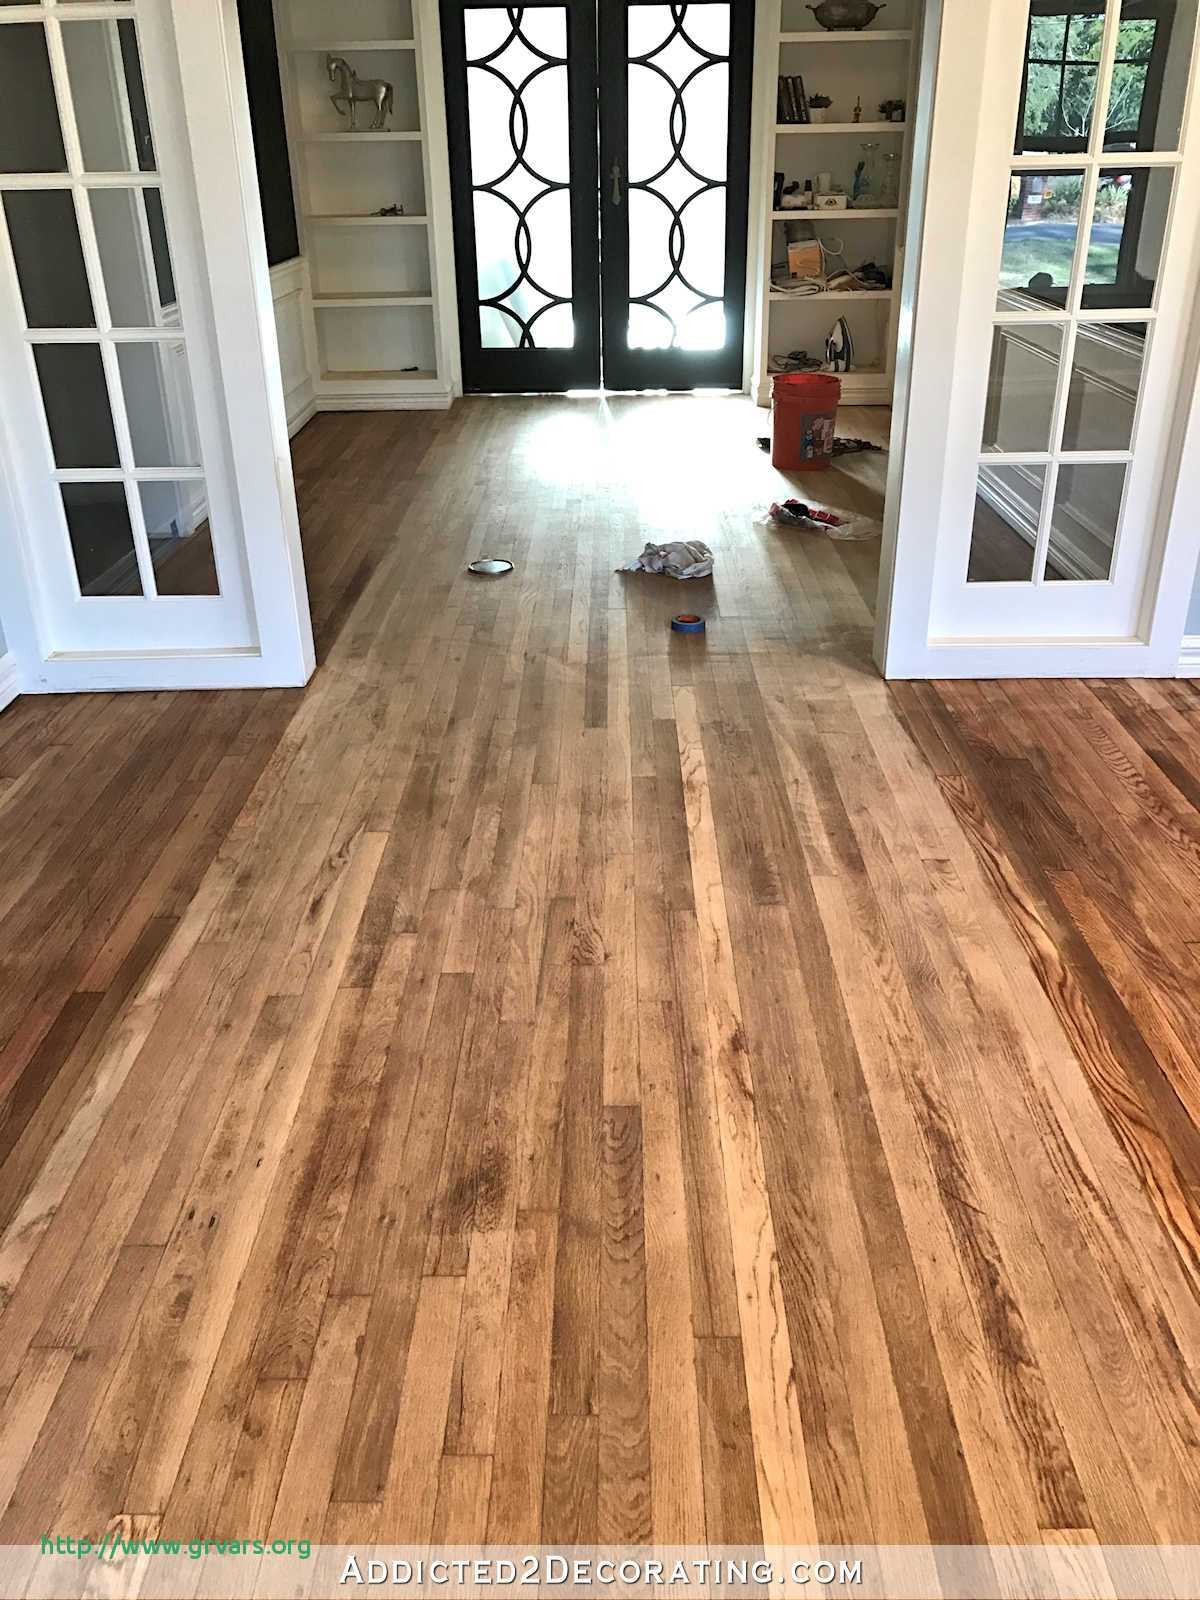 hardwood floor refinishing calgary of 15 luxe when can i put furniture on refinished hardwood floors in staining red oak hardwood floors 5 music room wood conditioner